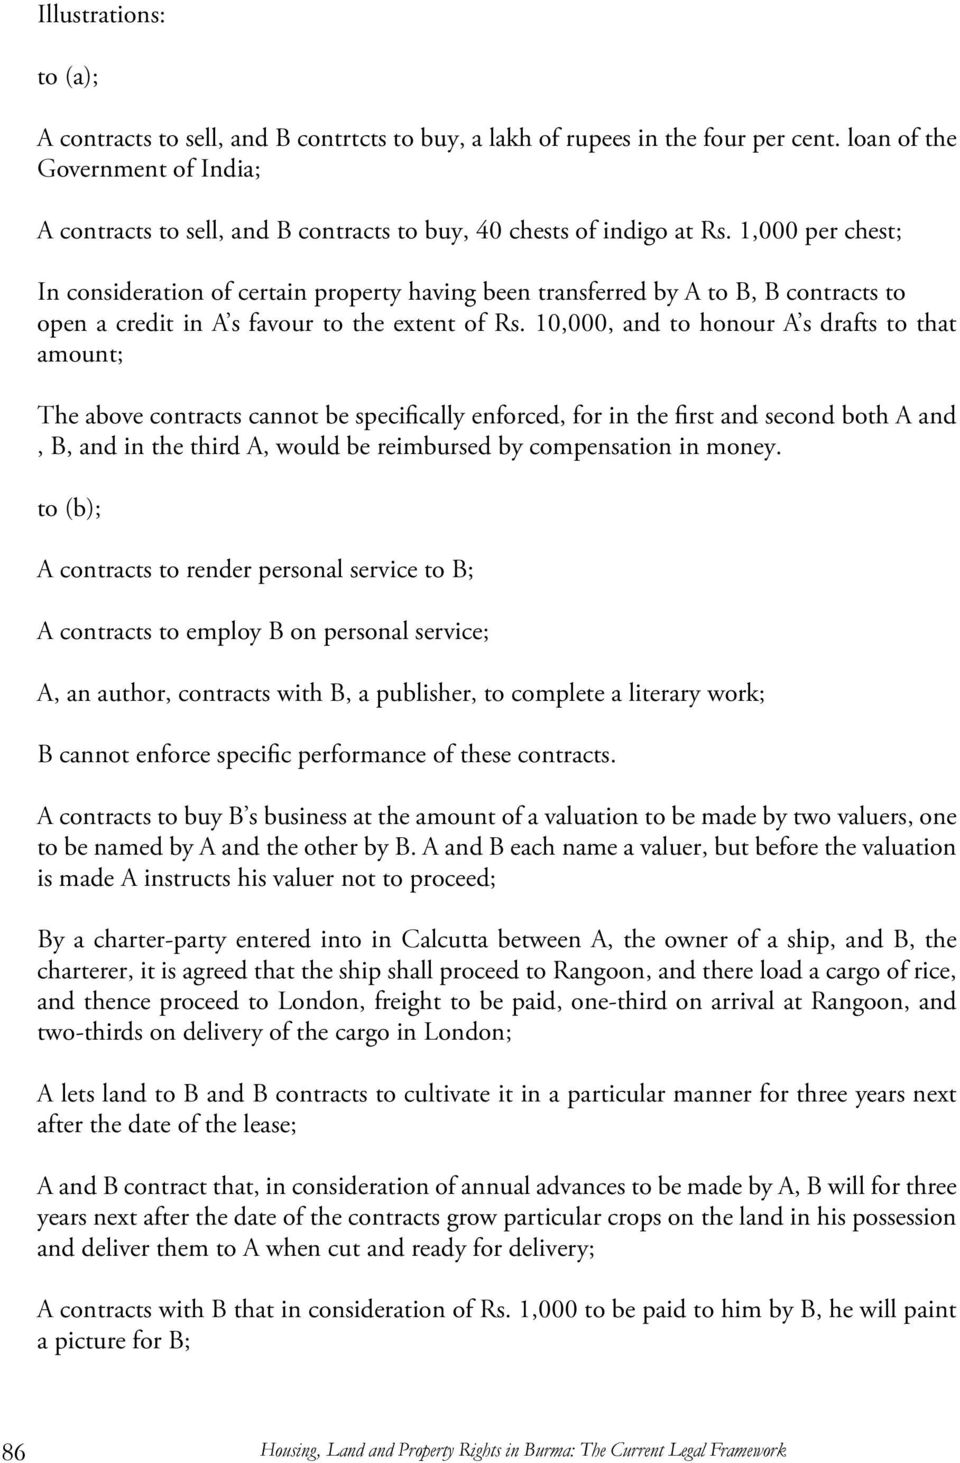 10,000, and to honour A s drafts to that amount; The above contracts cannot be specifically enforced, for in the first and second both A and, B, and in the third A, would be reimbursed by